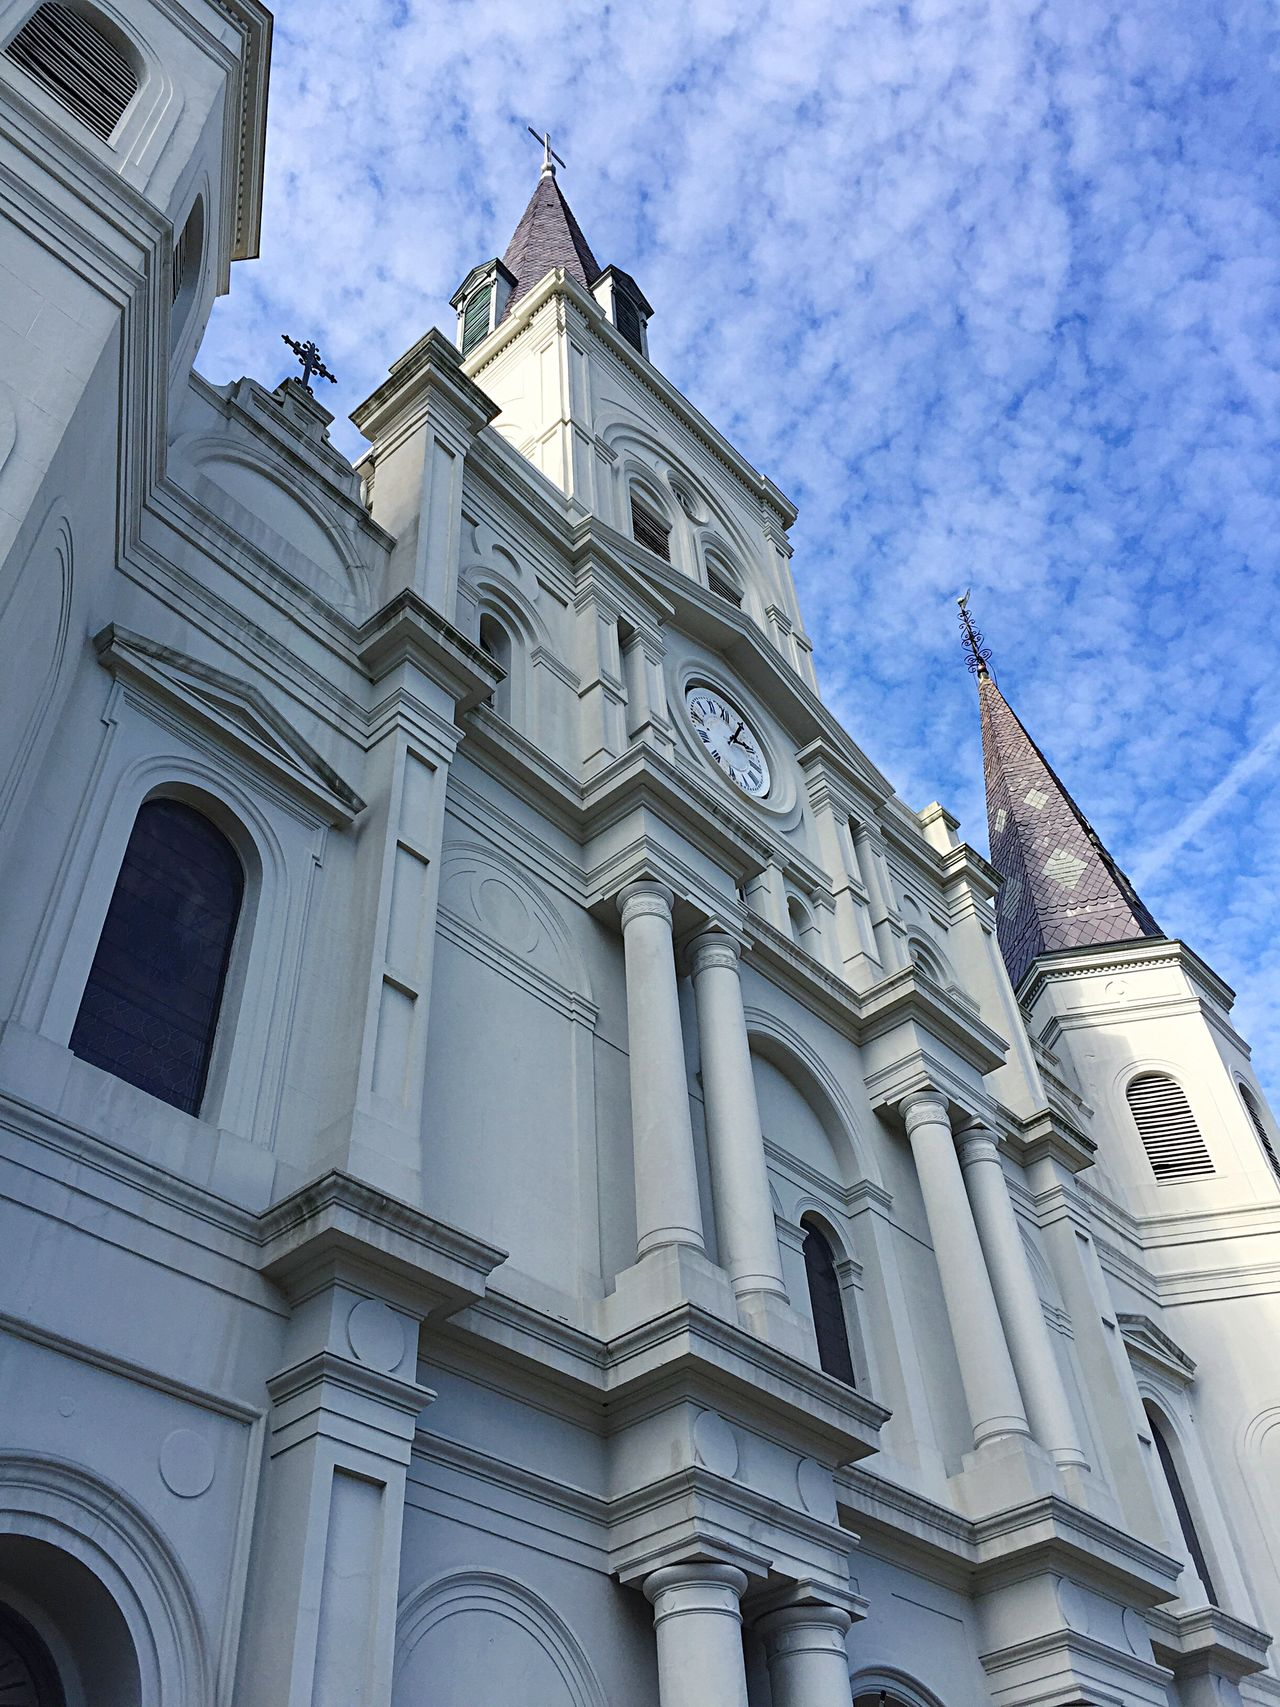 Building Exterior Architecture Low Angle View Built Structure Sky Outdoors No People Day Architectural Column Religion City Pediment Jackson Square St. Louis Cathedral